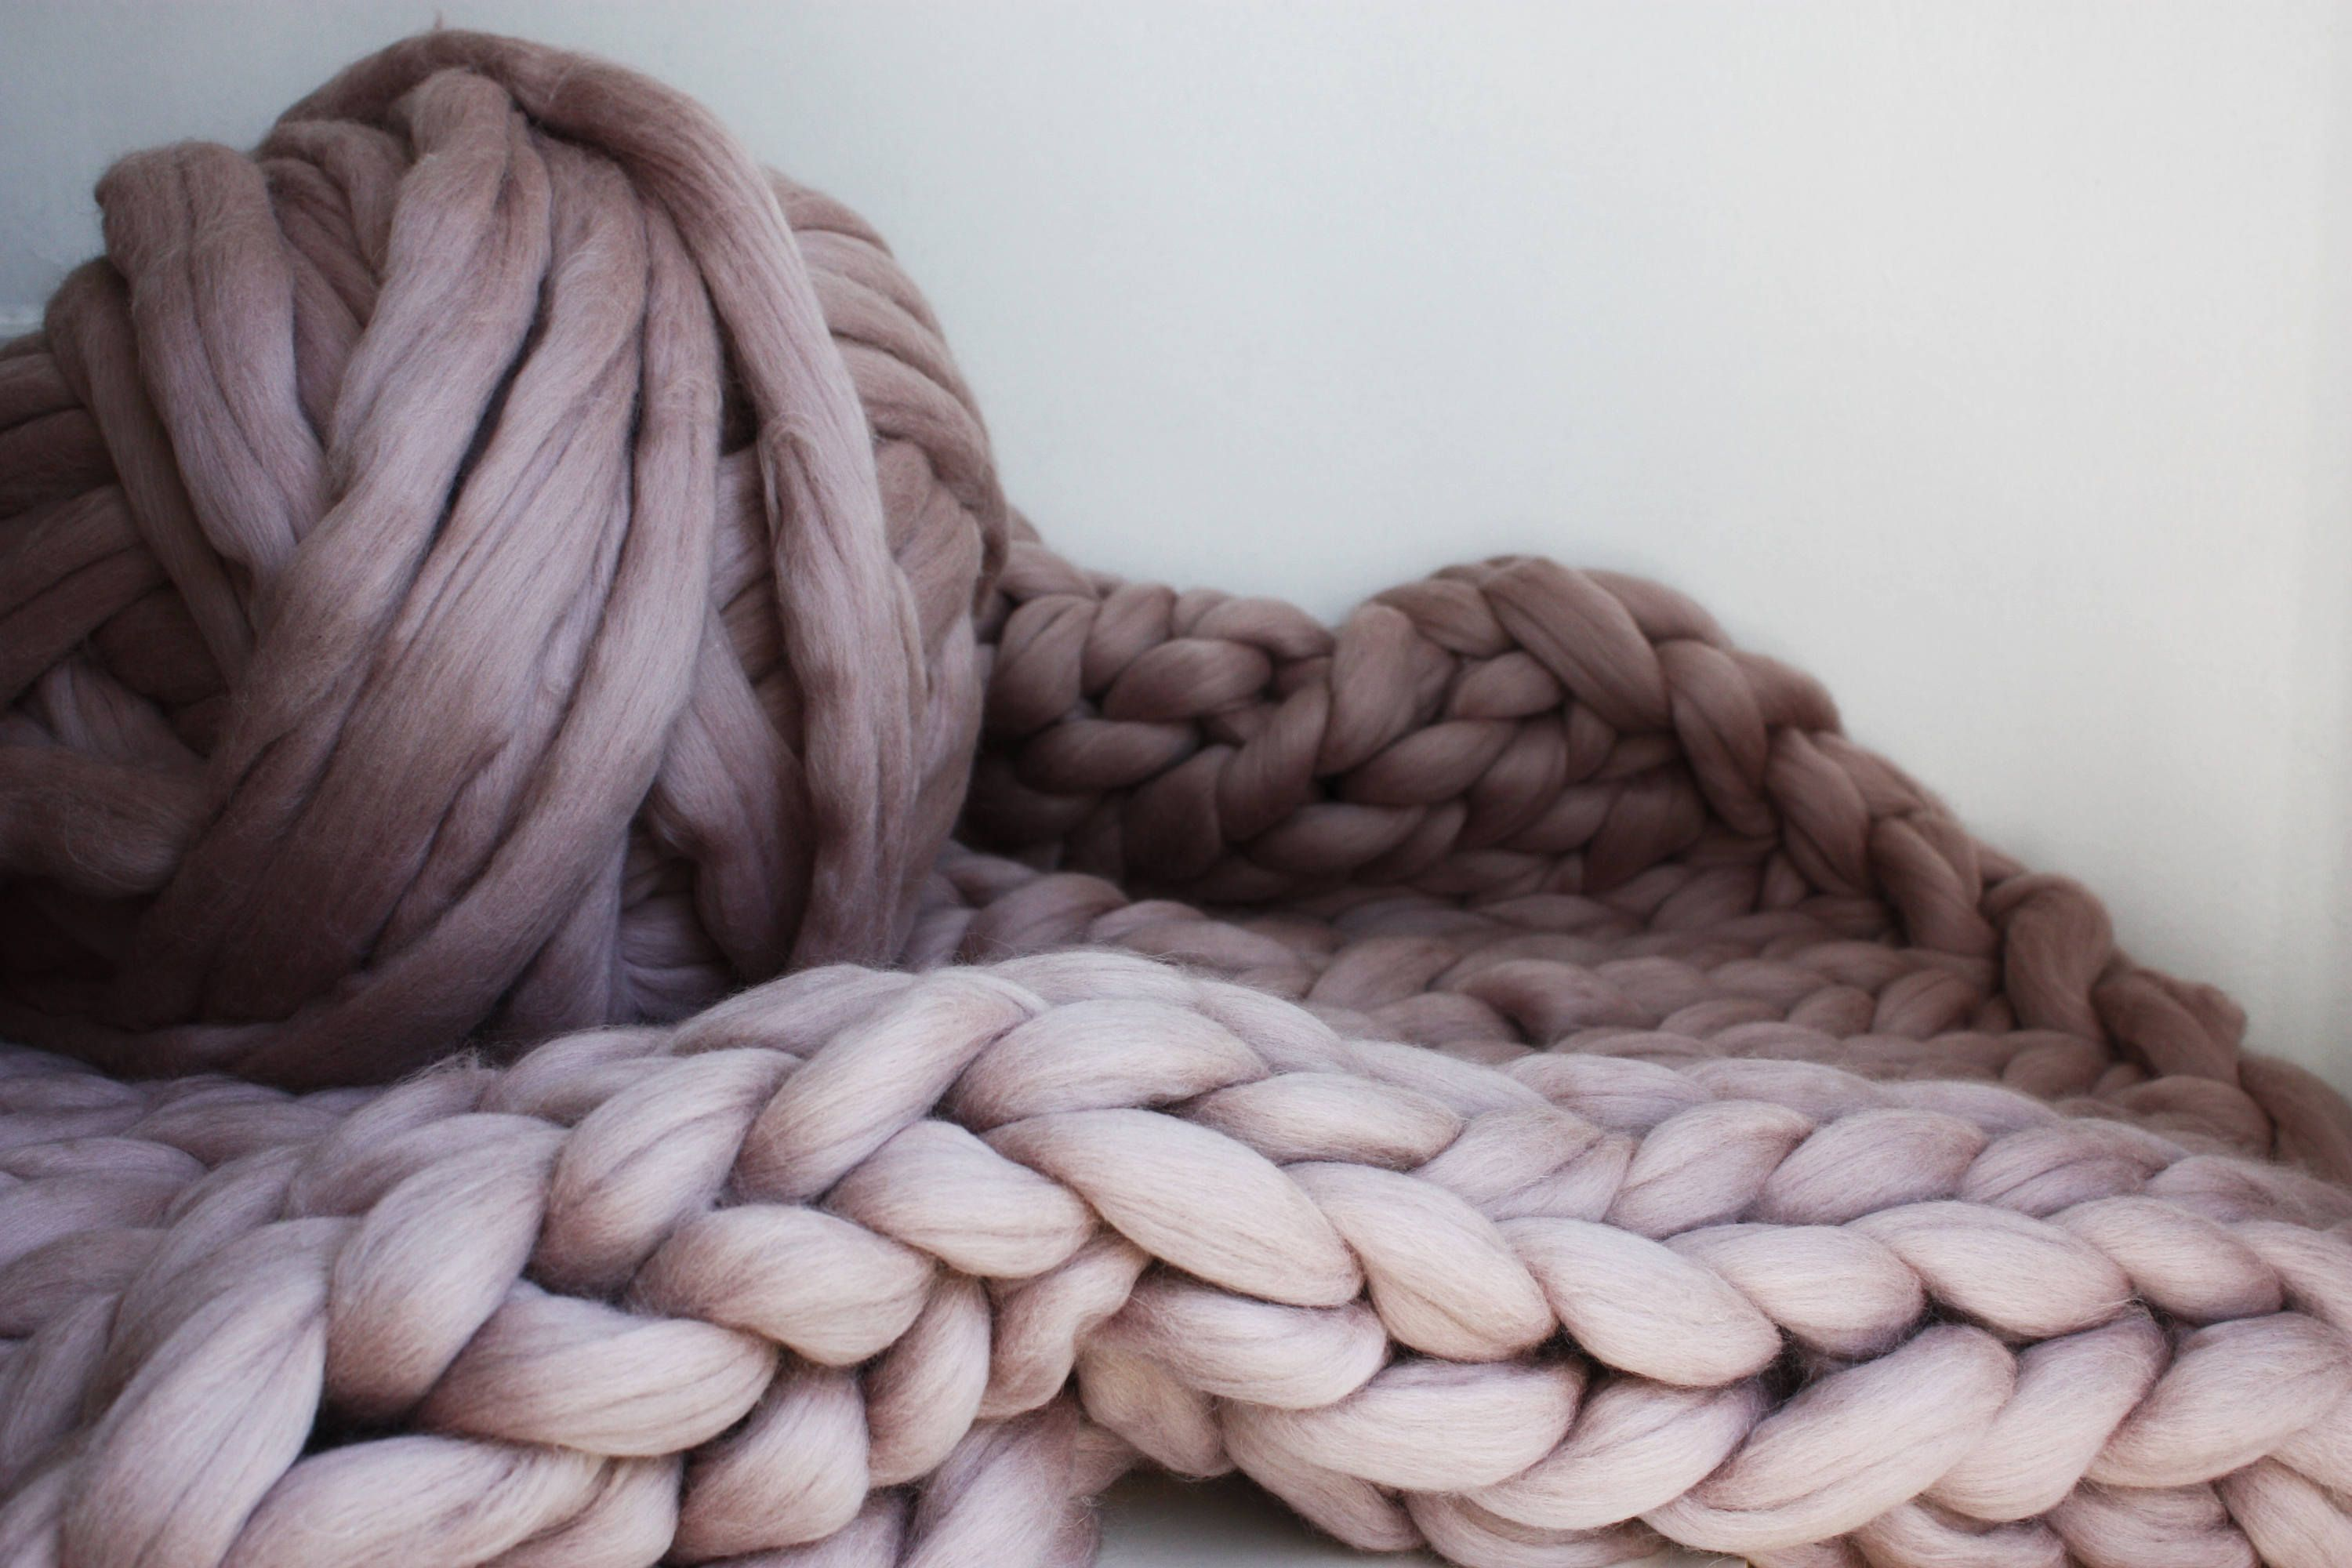 Chunky Knit Blanket Super Chunky Mink Knit Throw Blush Pink Merino Blanket Giant Knit Blanket Thick Knit Wool Throw Housewarming Gift Giant Knit Blanket Knitted Throws Knitted Blankets